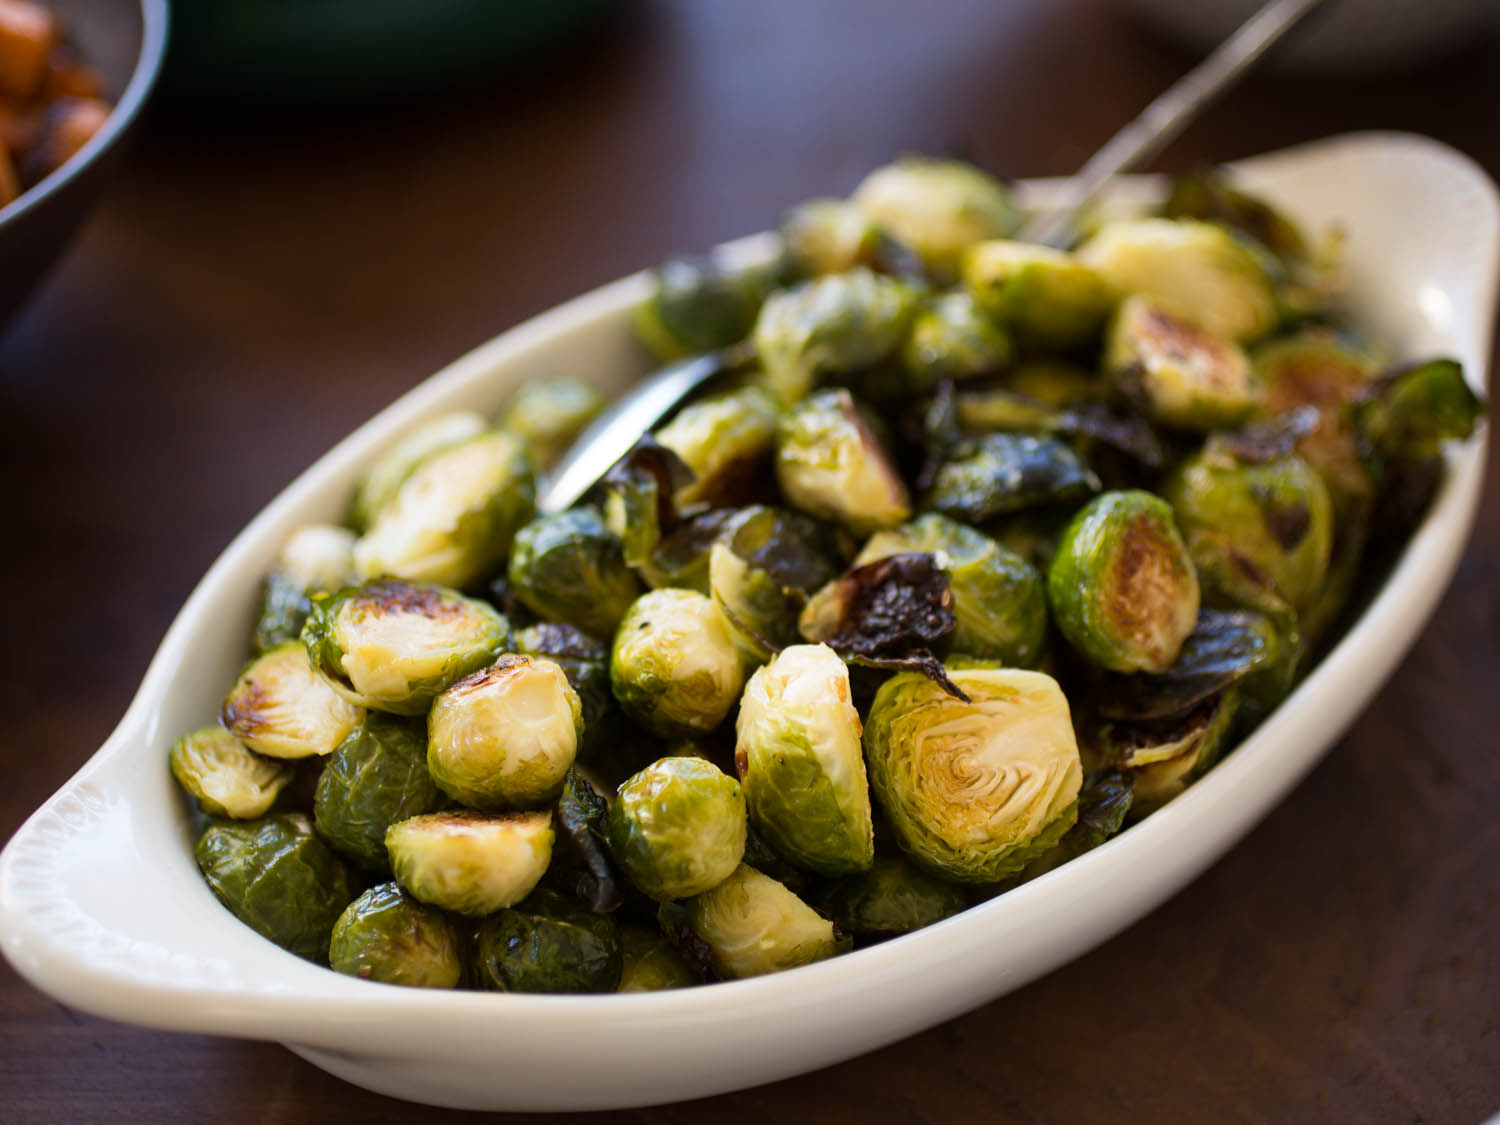 Roasted Brussels Sprouts and Shallots With Balsamic Vinegar Recipe